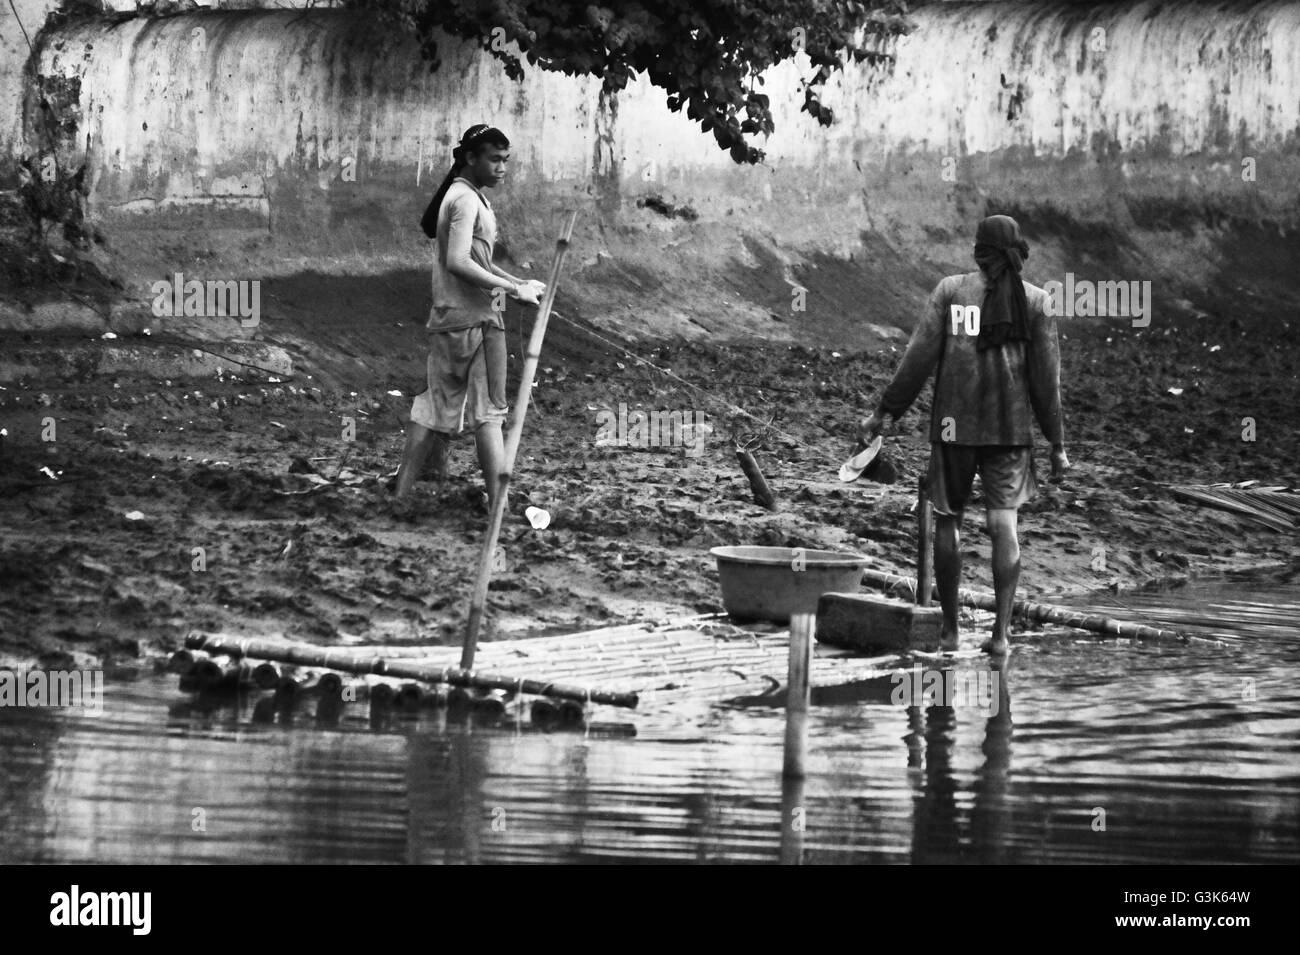 Fishermen with their raft at the River of Roxas, Panay, Philippines. - Stock Image